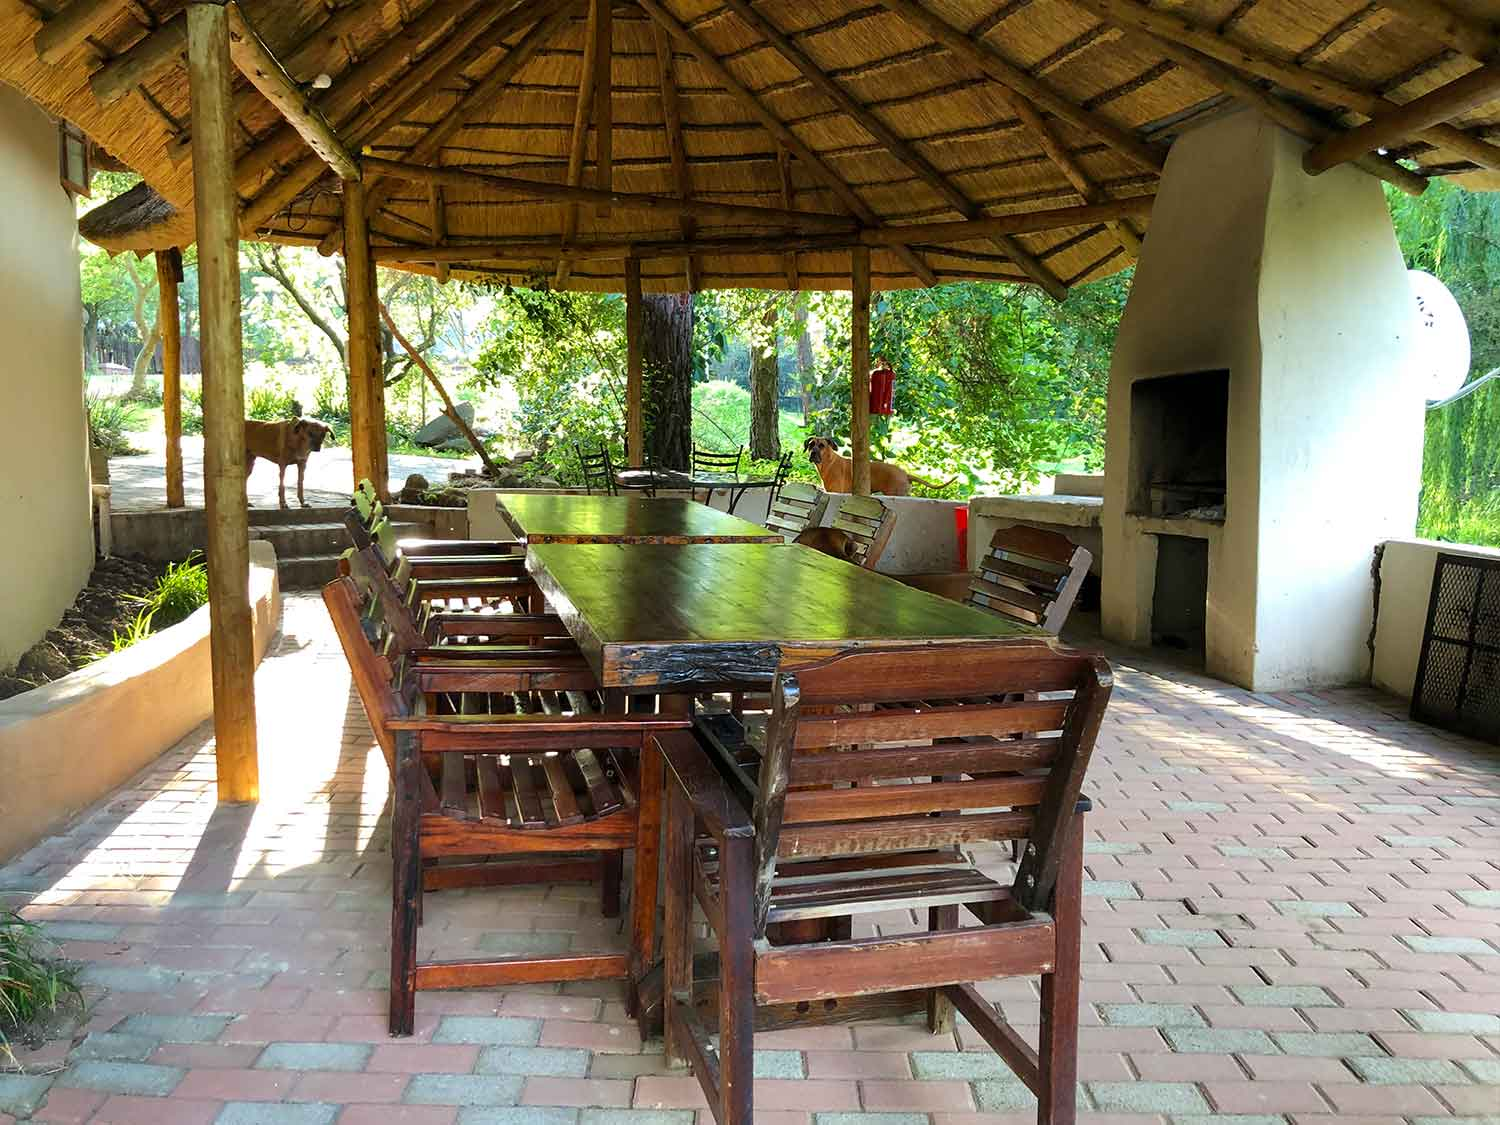 No 5 : Tawny eagle Chalet - Pine Valley